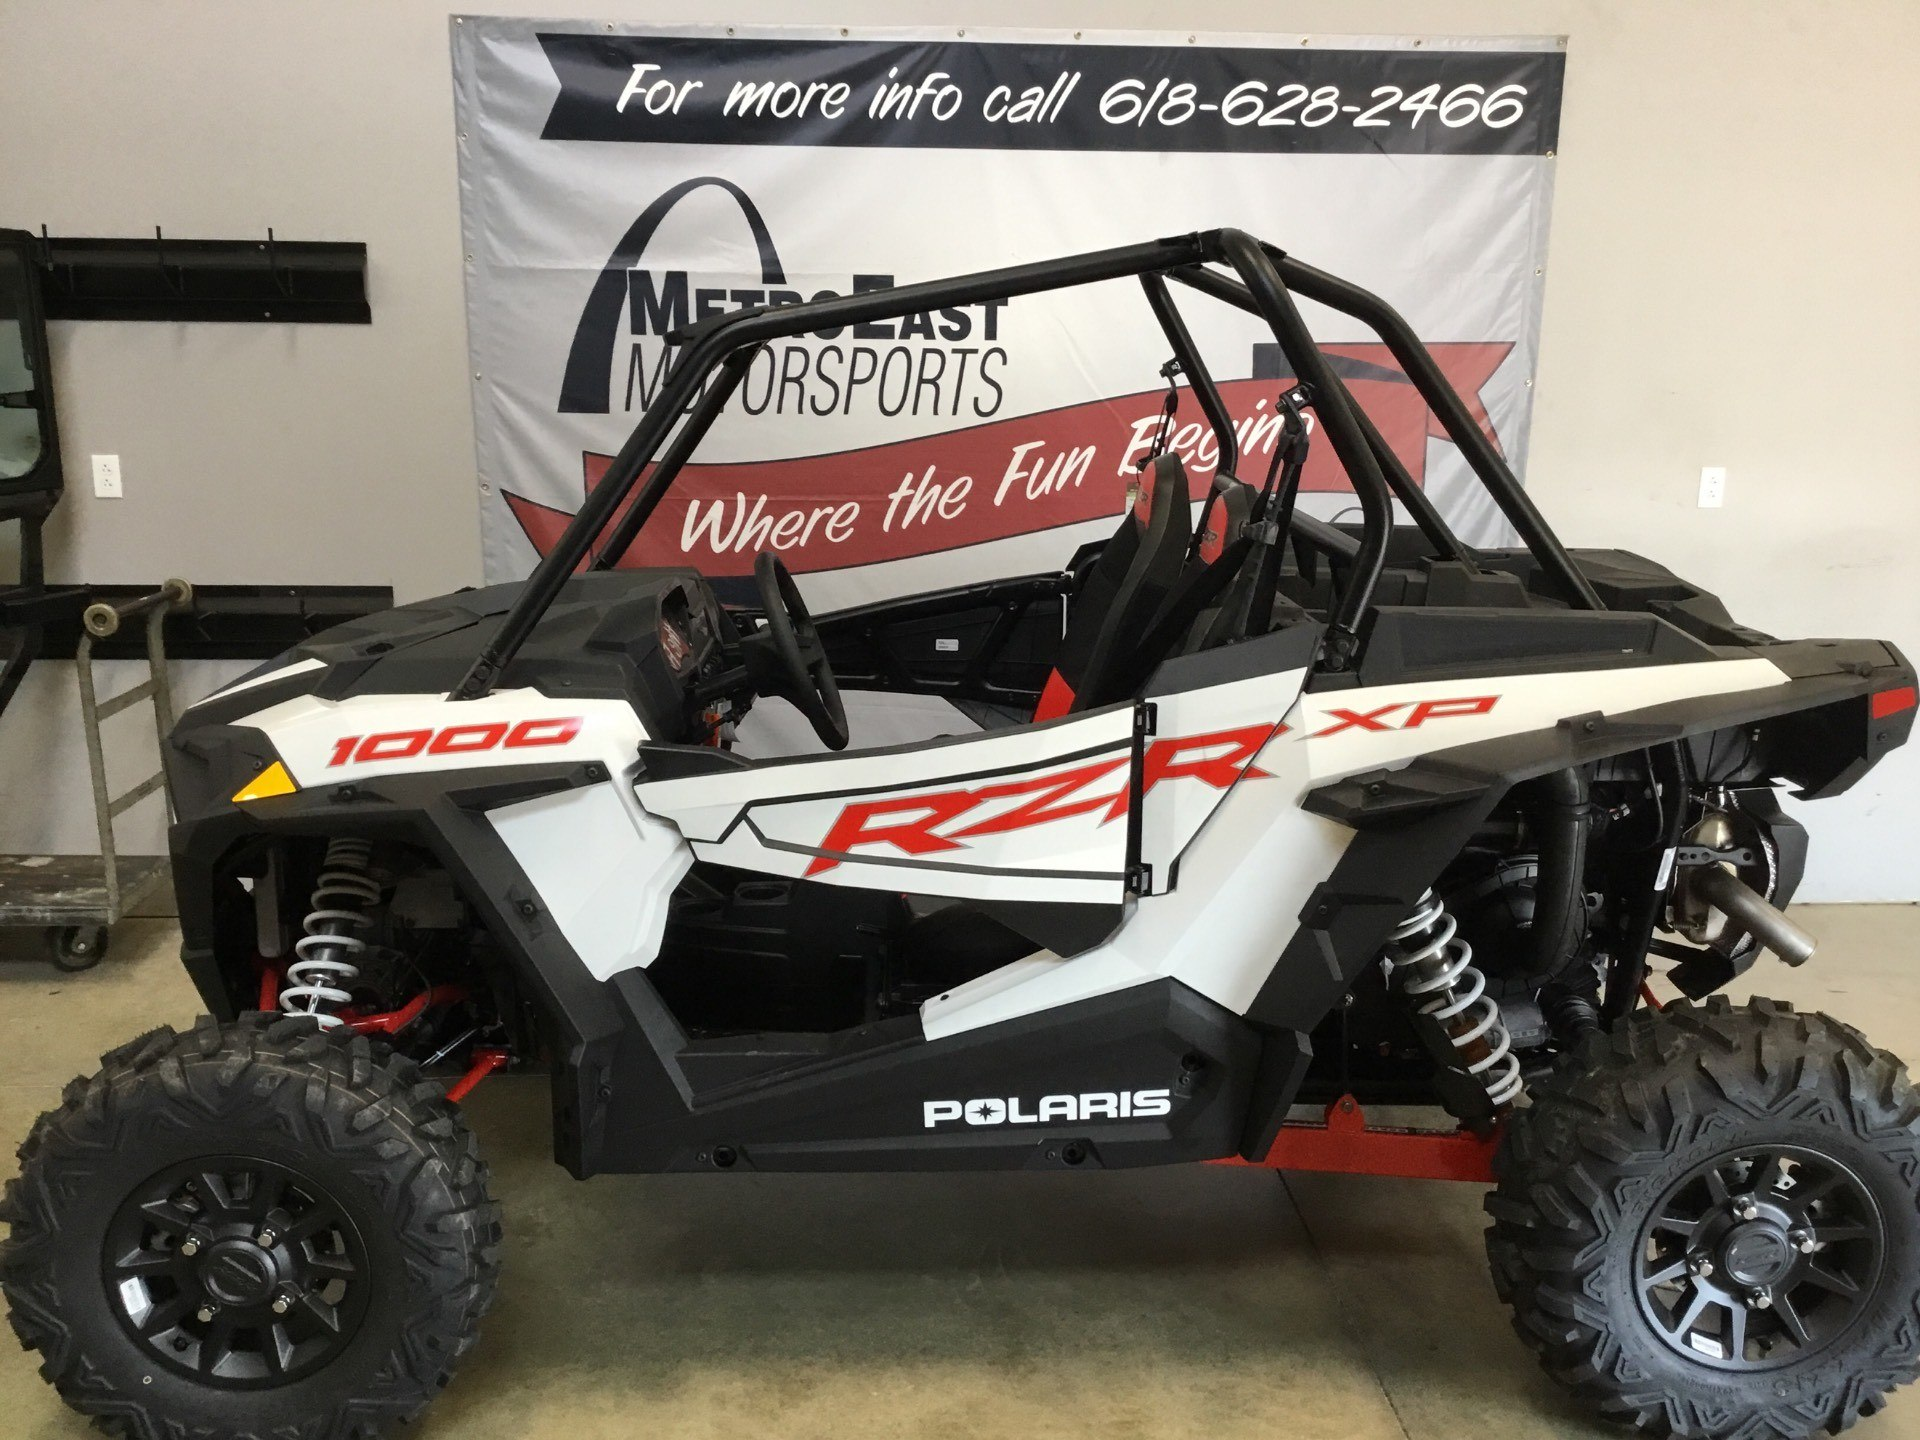 2020 Polaris RZR XP 1000 in O Fallon, Illinois - Photo 1